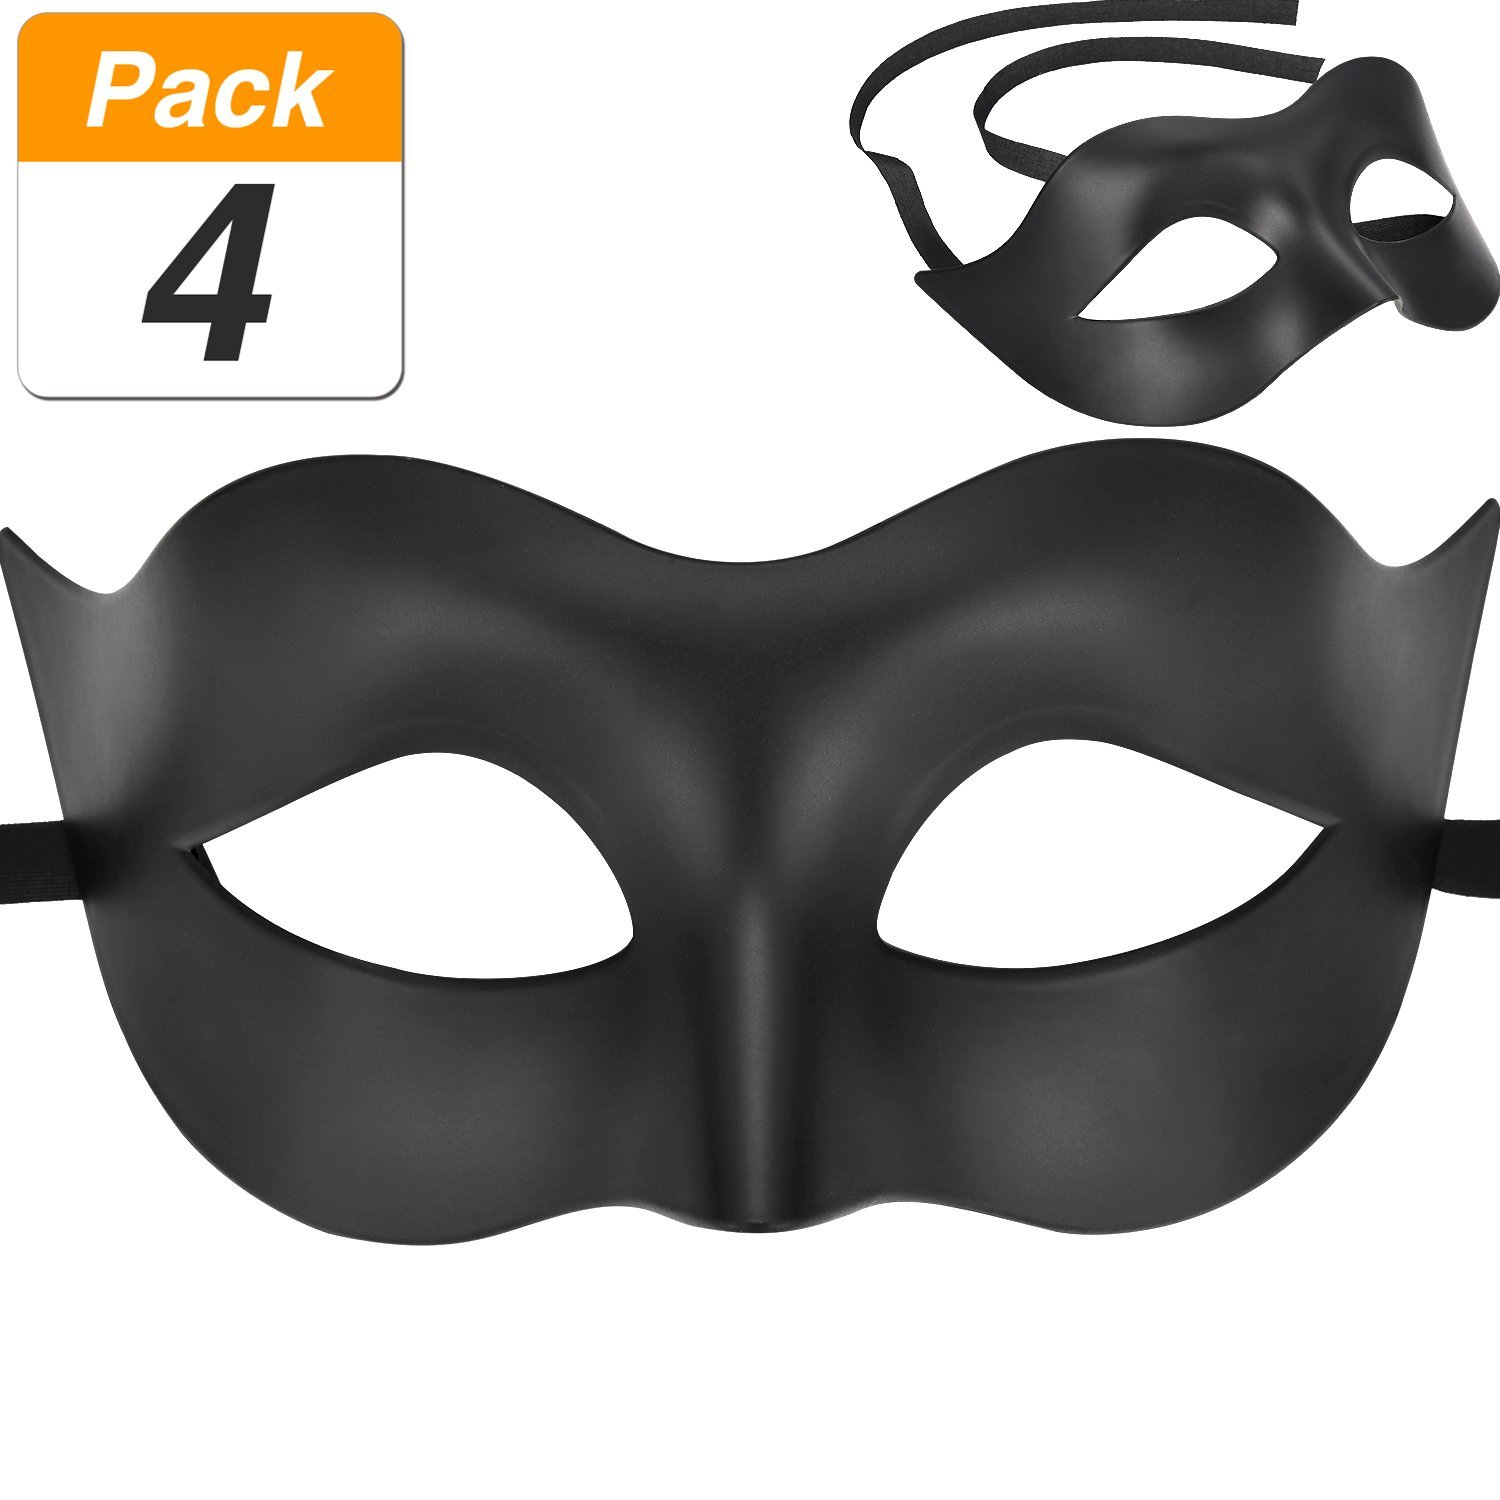 Jovitec 4 Pack Masquerade Mask Plastic Mask Venetian Eye Mask for Carnival Prom Ball Fancy Dress Party Supplies, Black